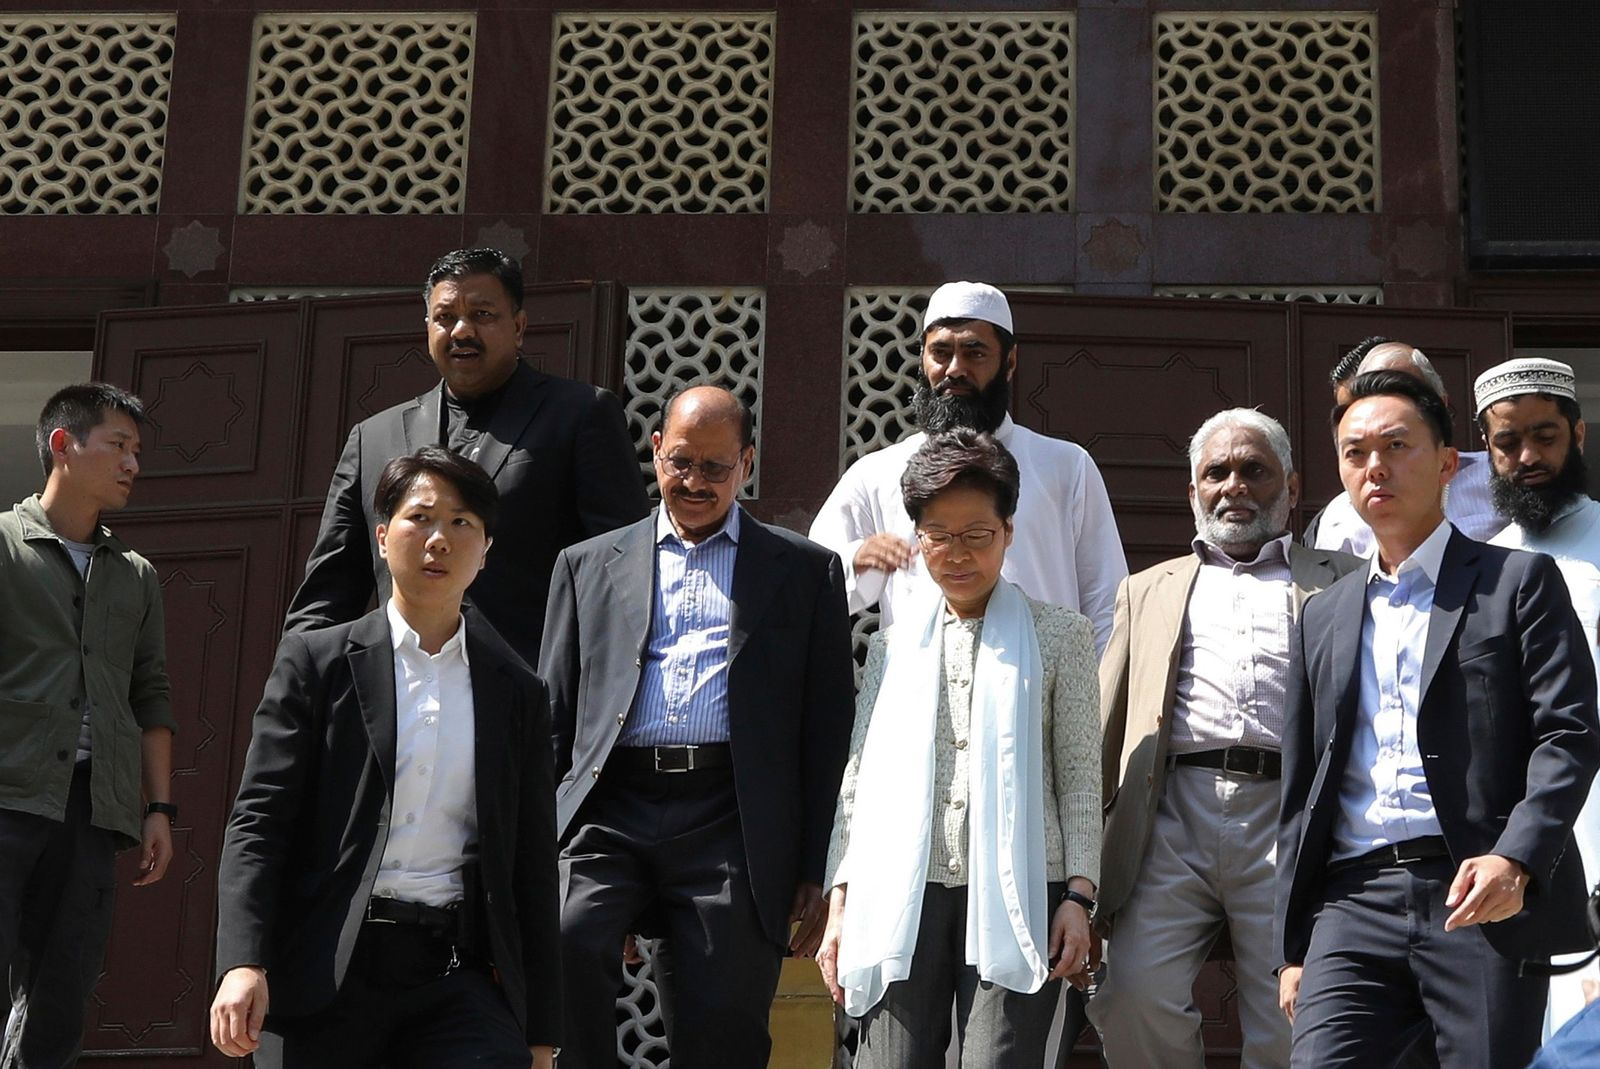 Hong Kong Chief Executive Carrie Lam, center, leaves a mosque in Hong Kong, Monday, Oct. 21, 2019.{ } (AP Photo)